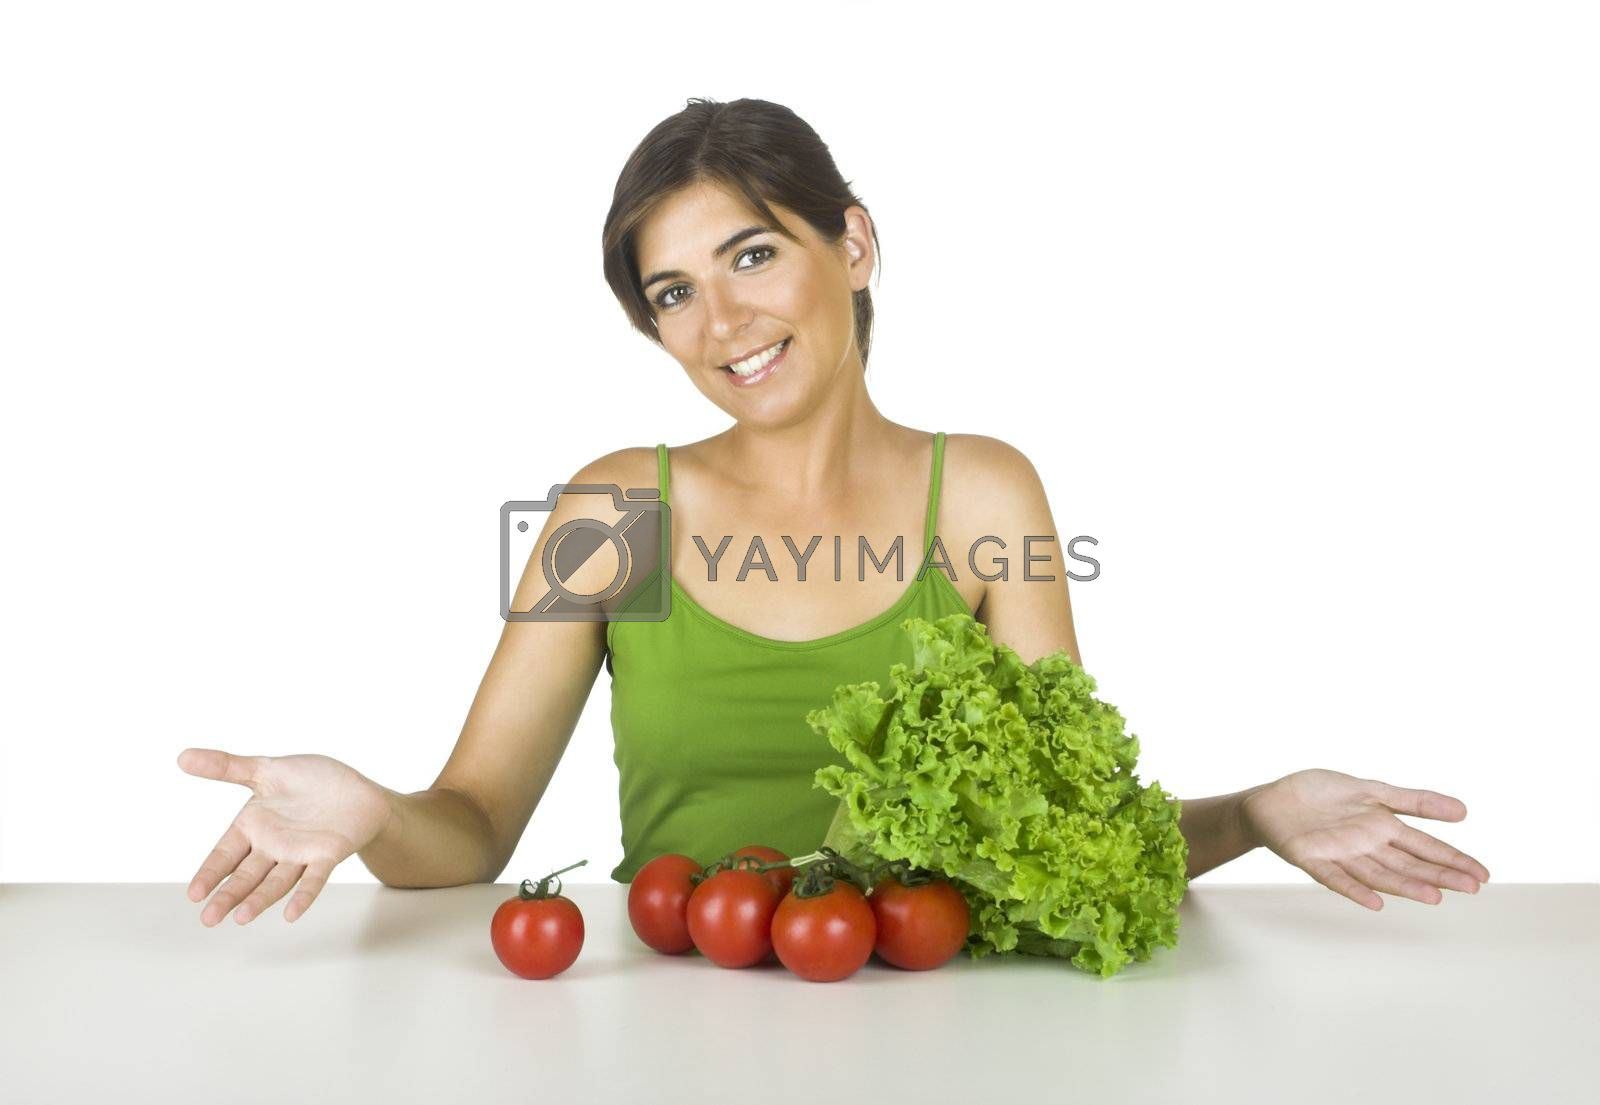 Healthy lifestyle by Iko